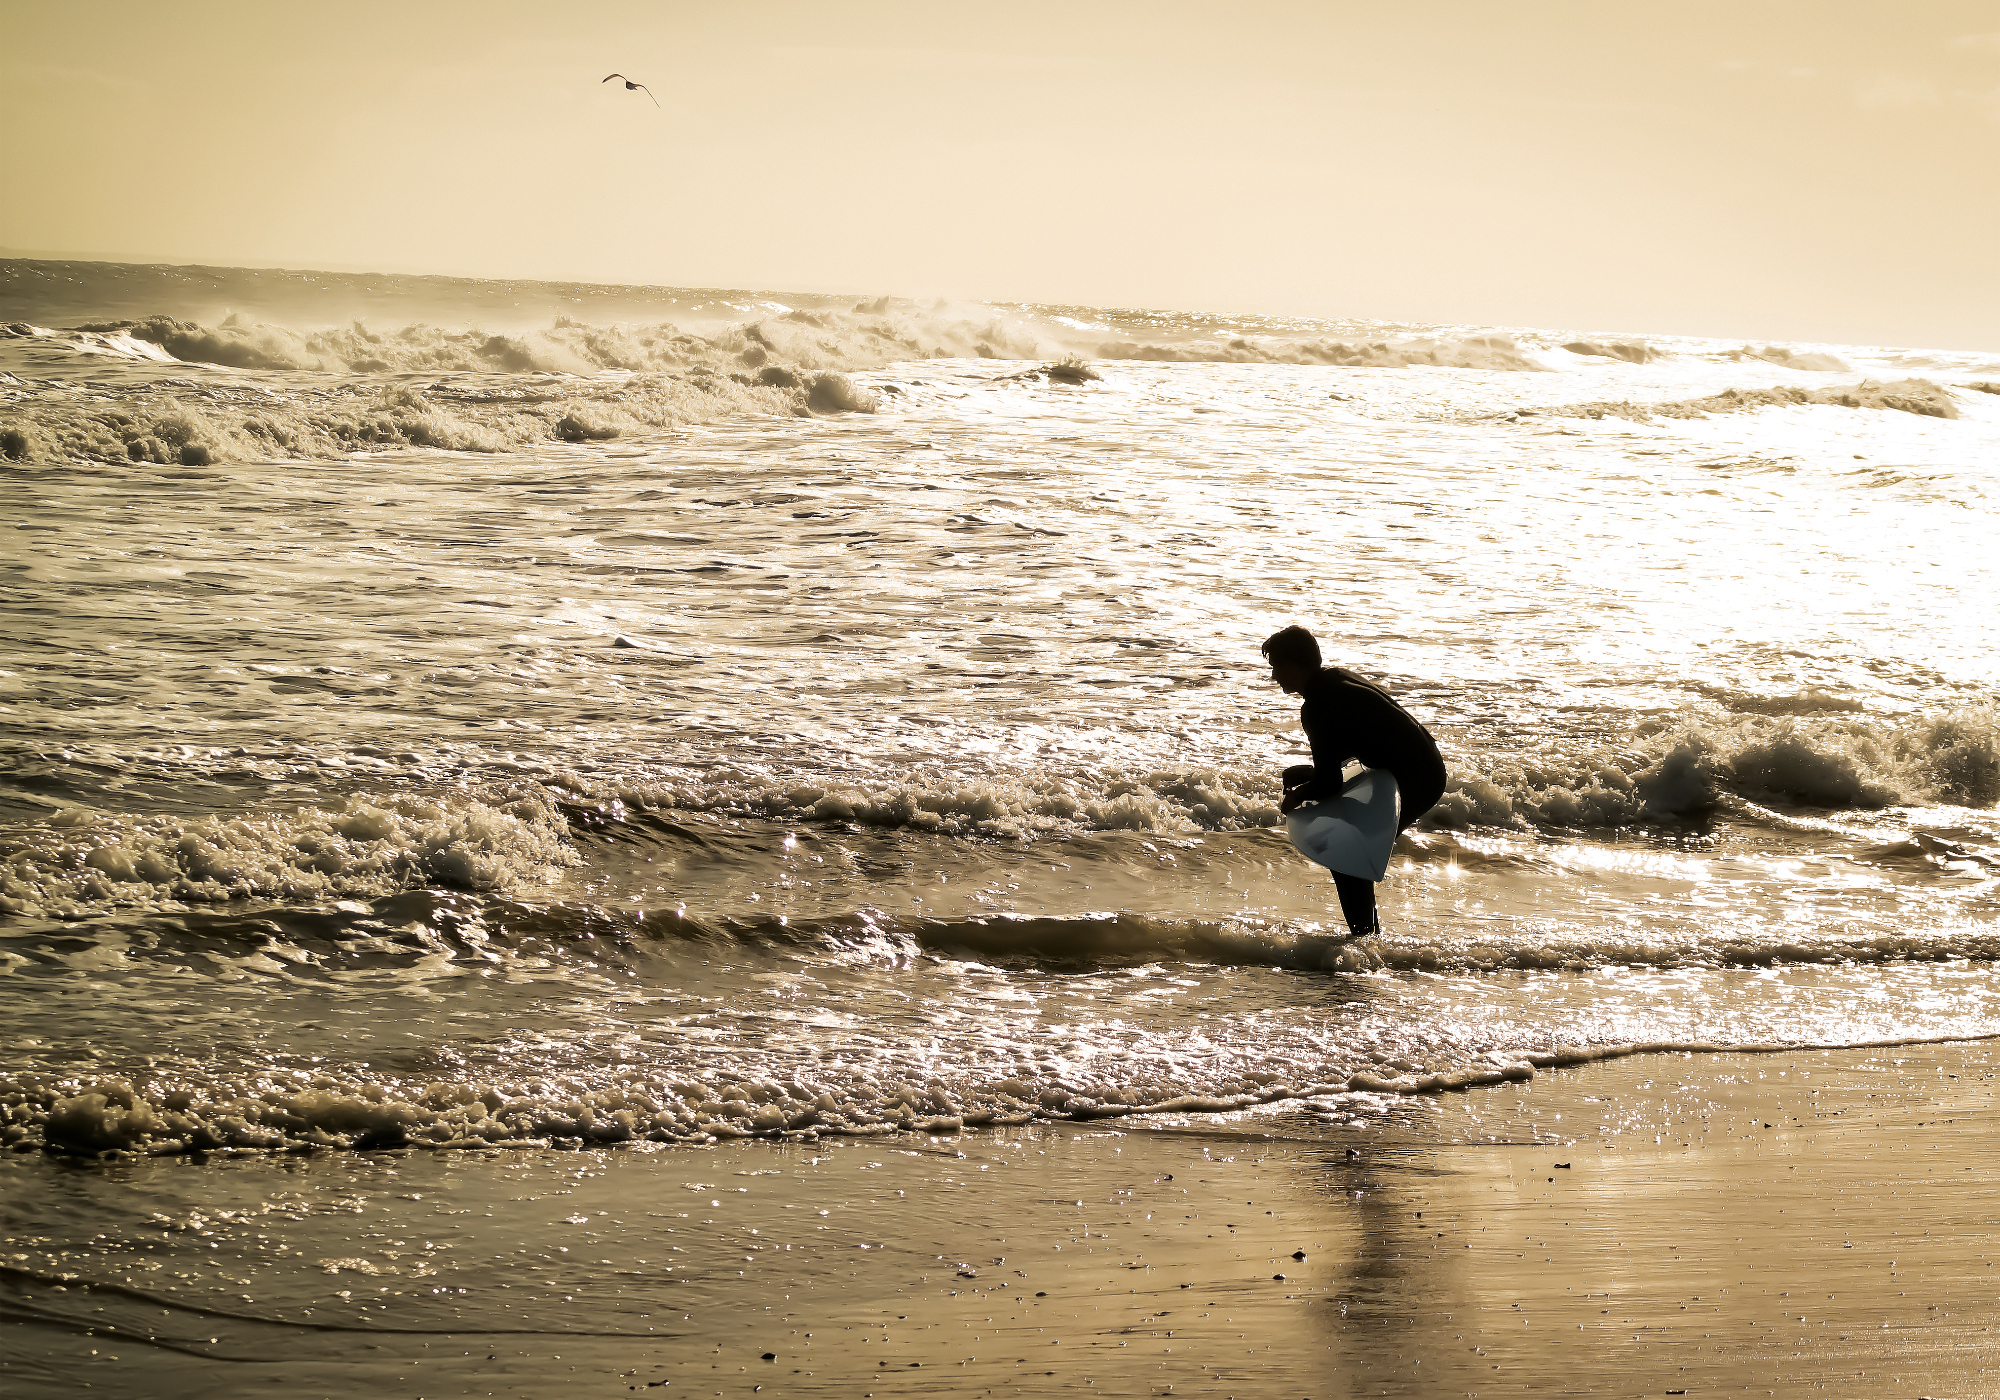 Photograph of a surfer getting ready to walk into the water at sunrise on the beach.